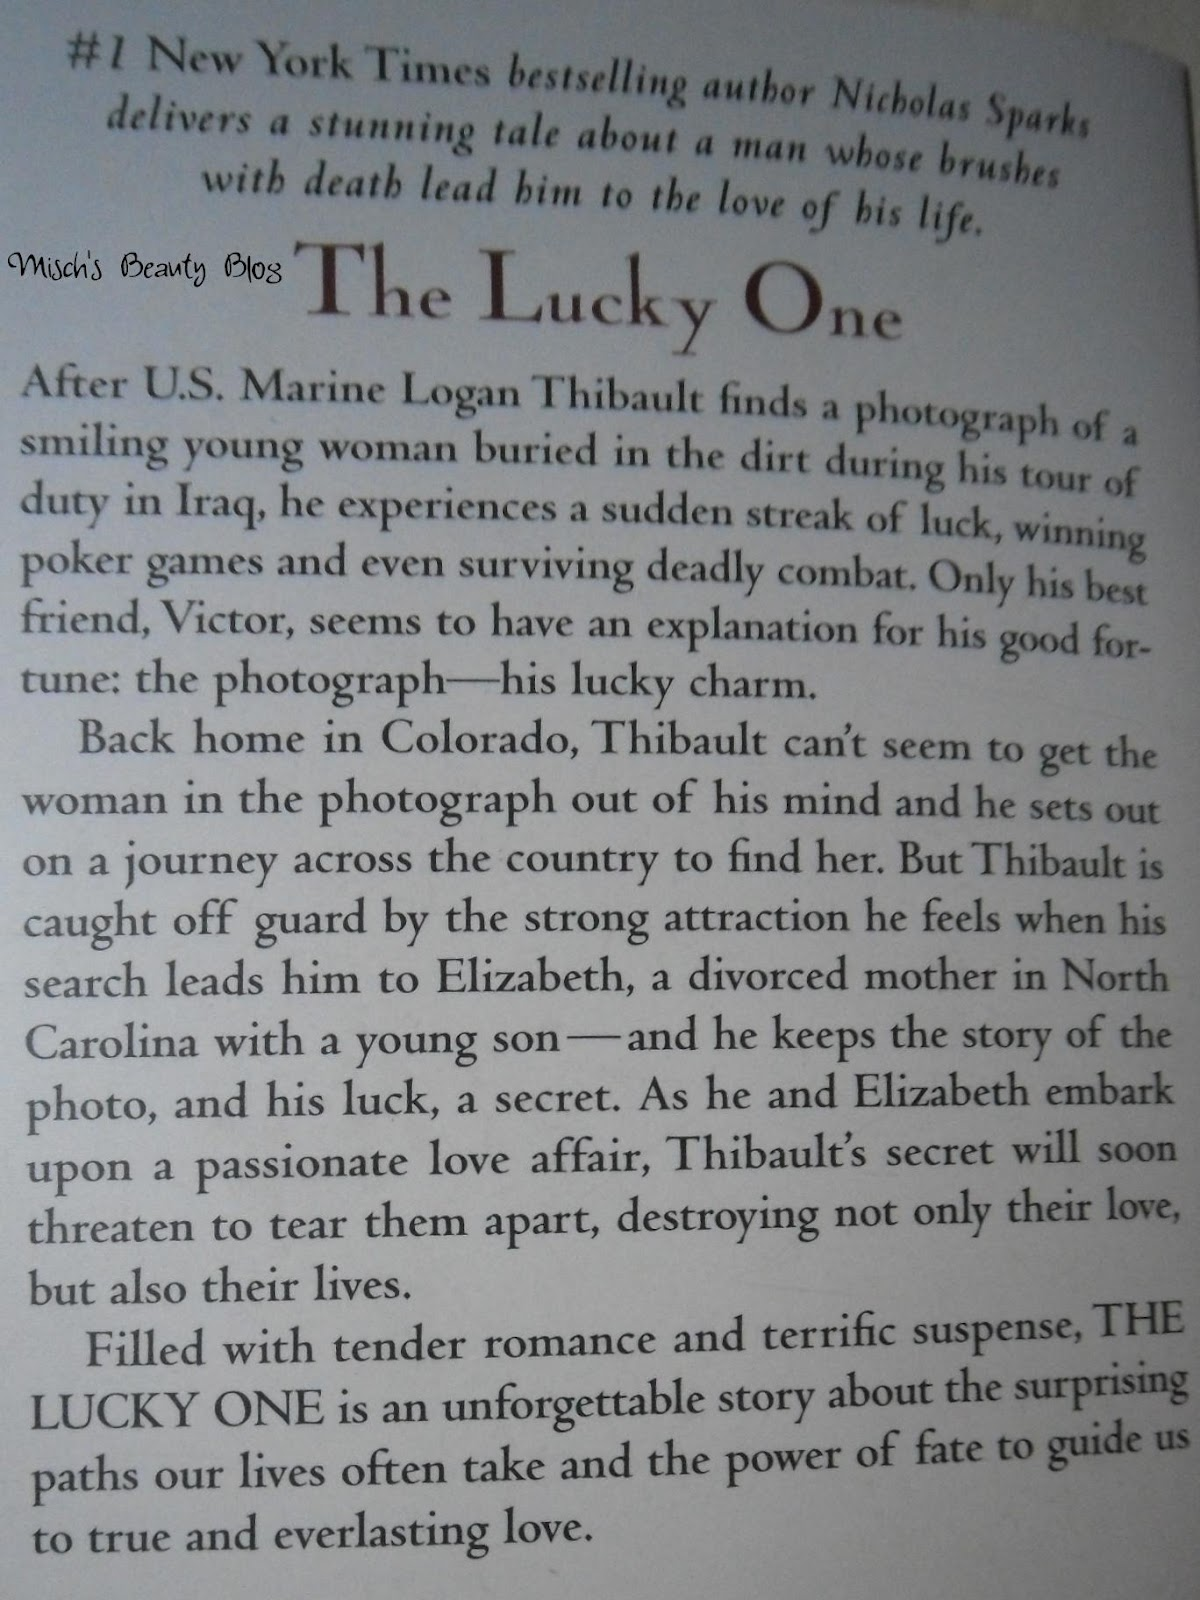 The lucky one by nicholas sparks book report